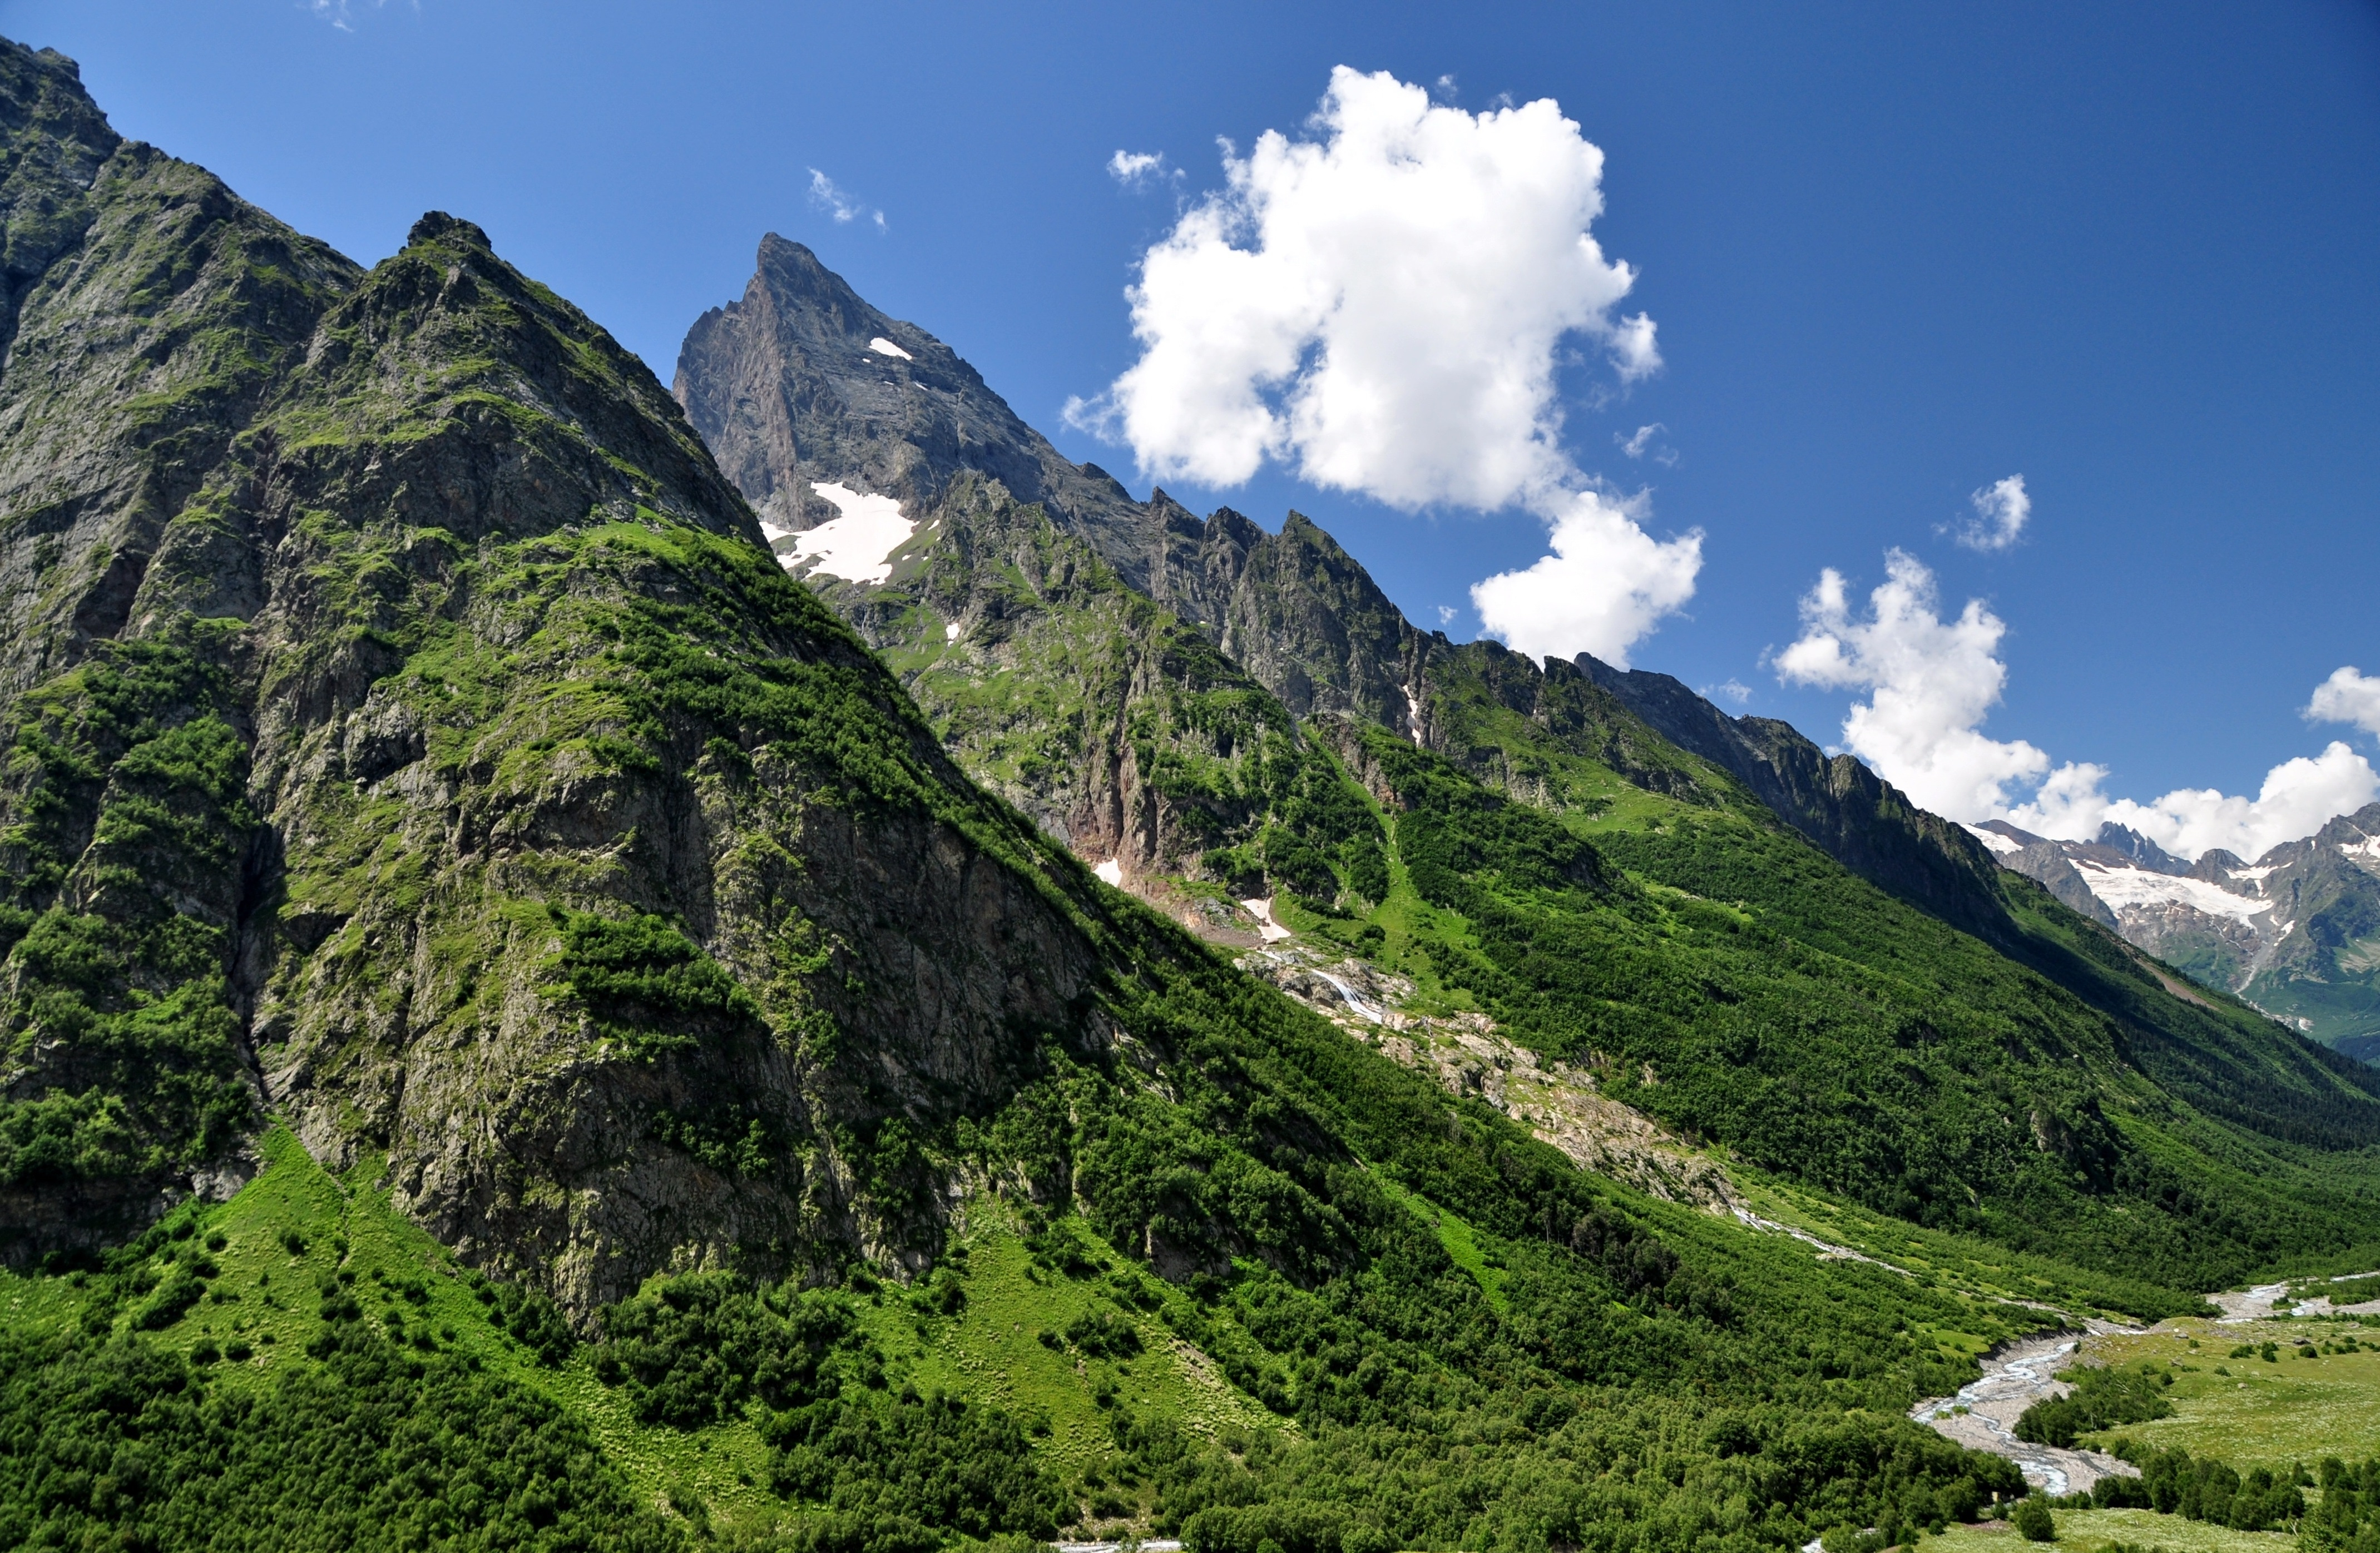 141896 download wallpaper Grass, Nature, Sky, Mountains, Caucasus screensavers and pictures for free